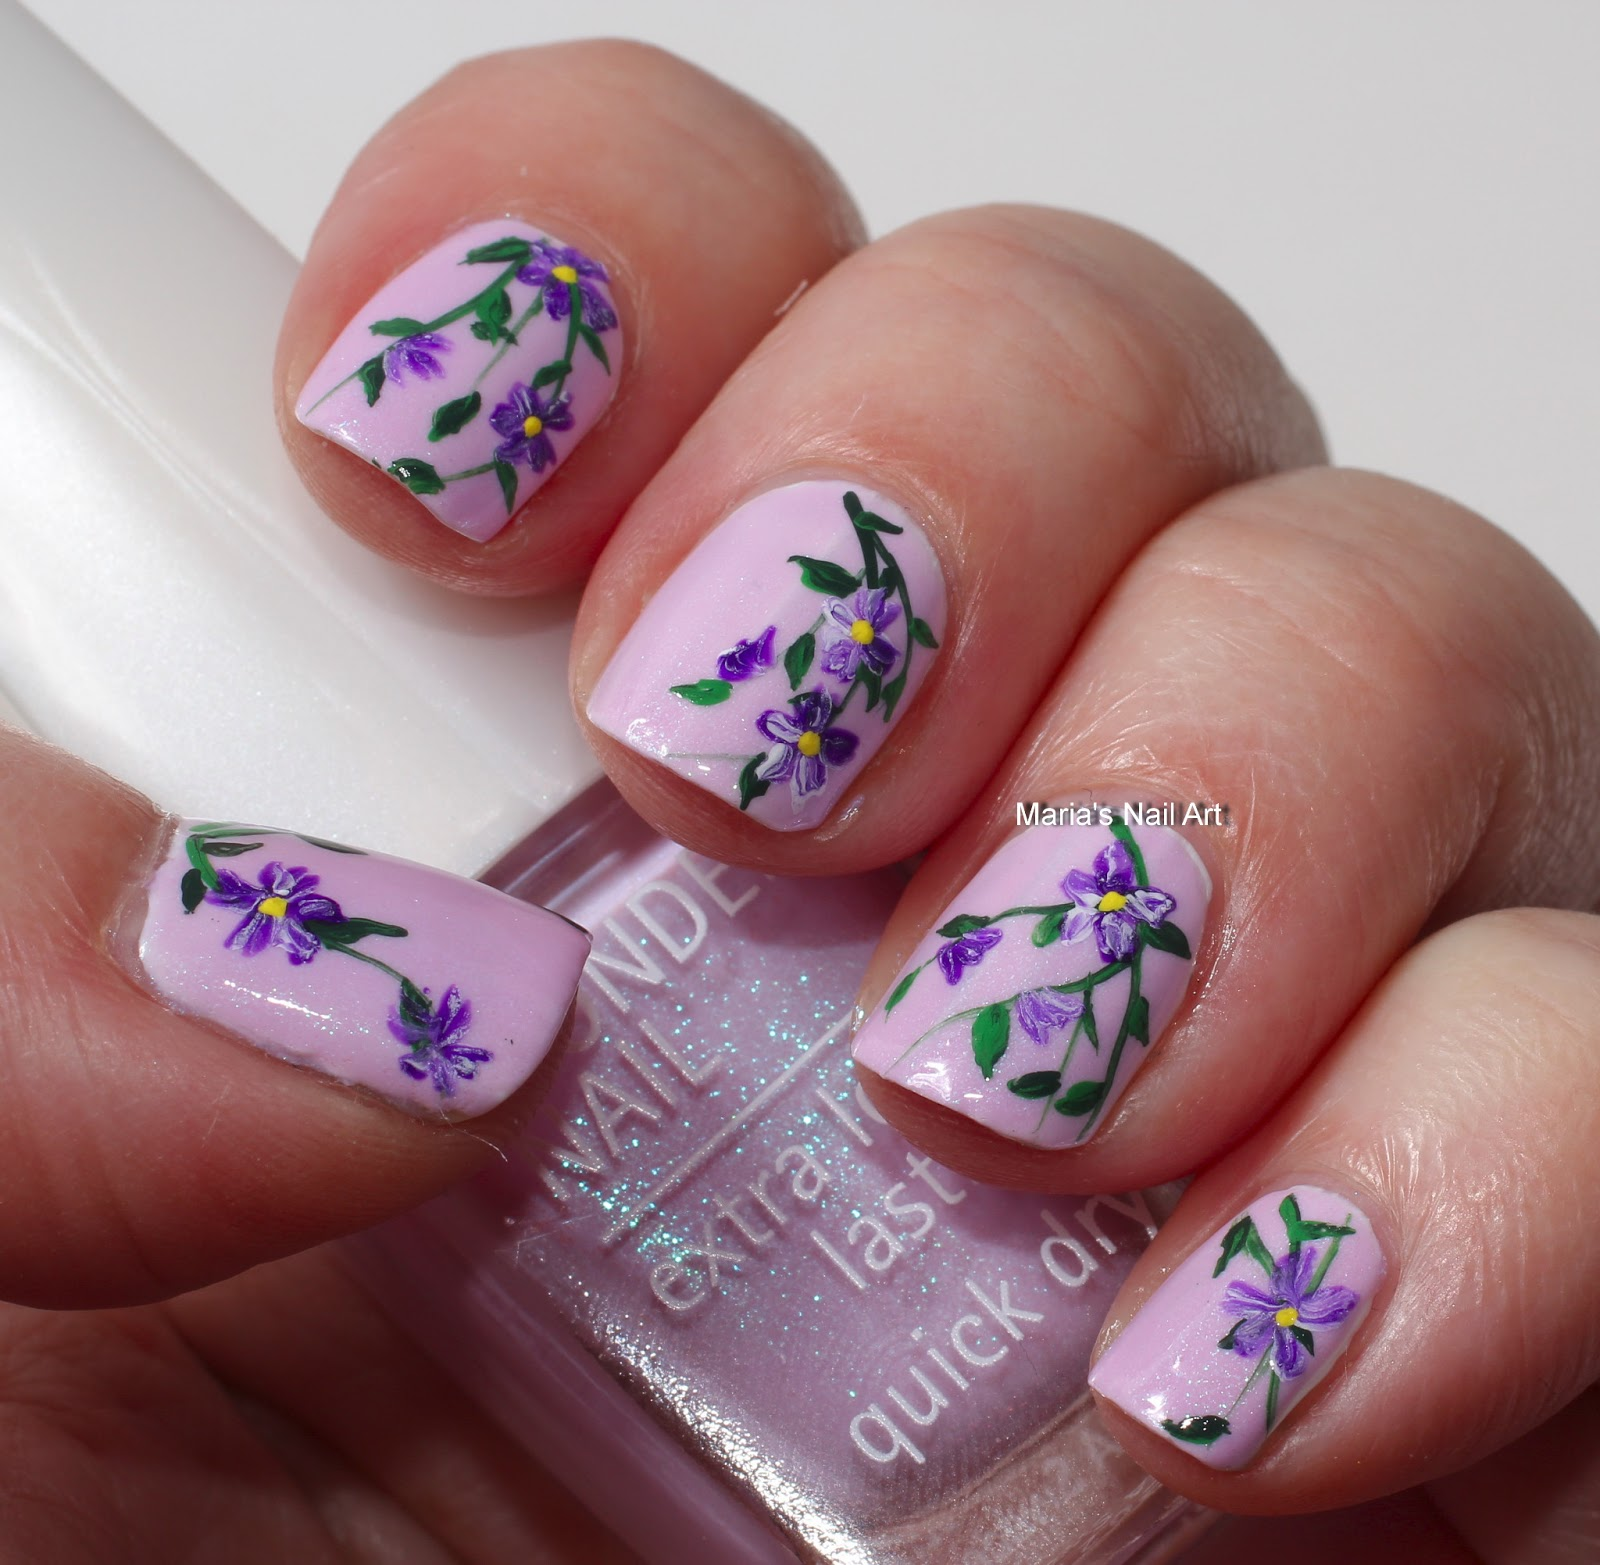 Marias Nail Art And Polish Blog Flowers On Icy Lilac In The Snow